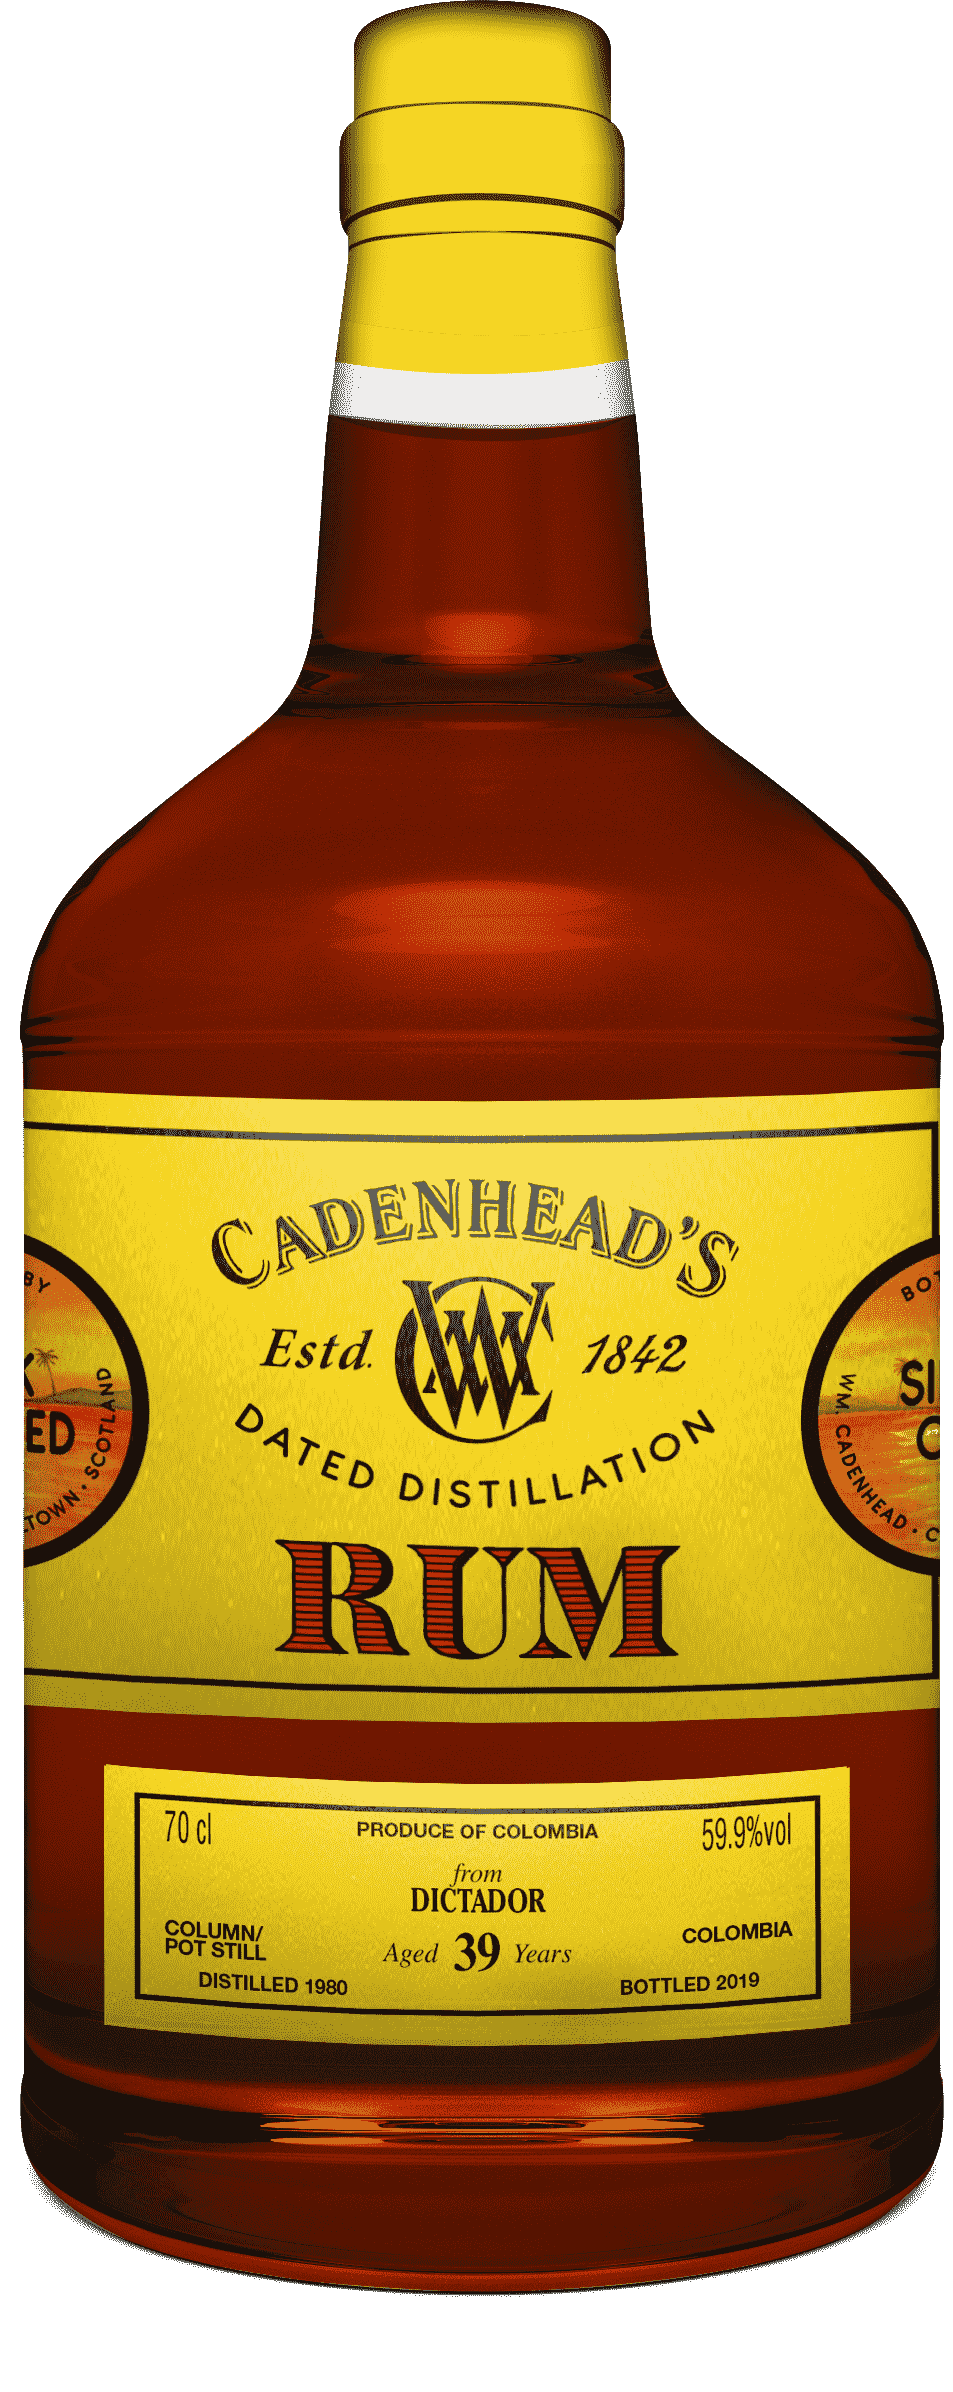 A Bottle of DD-Rum-Dictator-39-YO